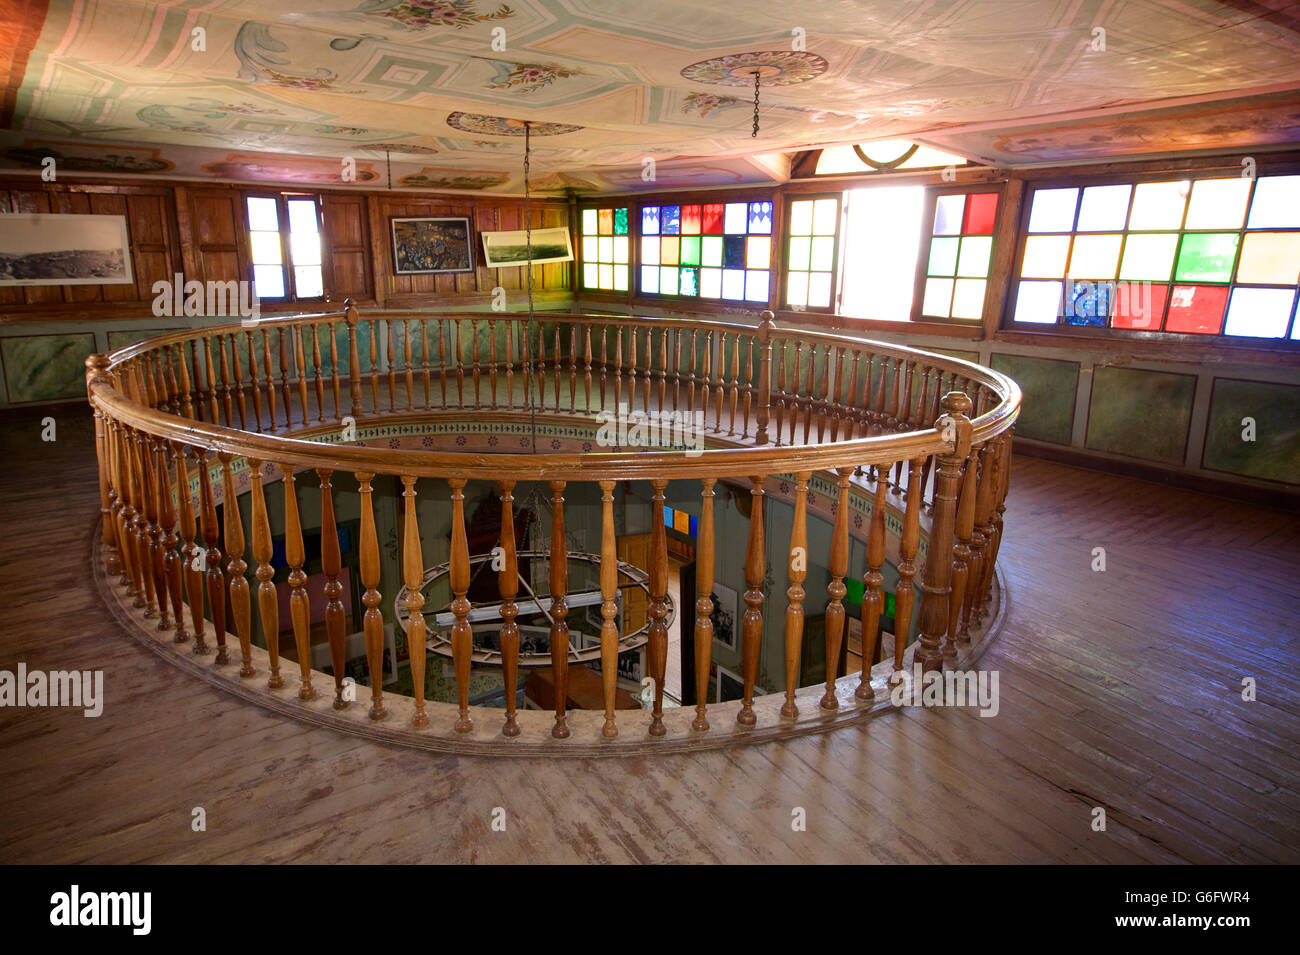 Interior of the  house of Arthur Rimbaud, now a small museum. Harar, Ethiopia. - Stock Image